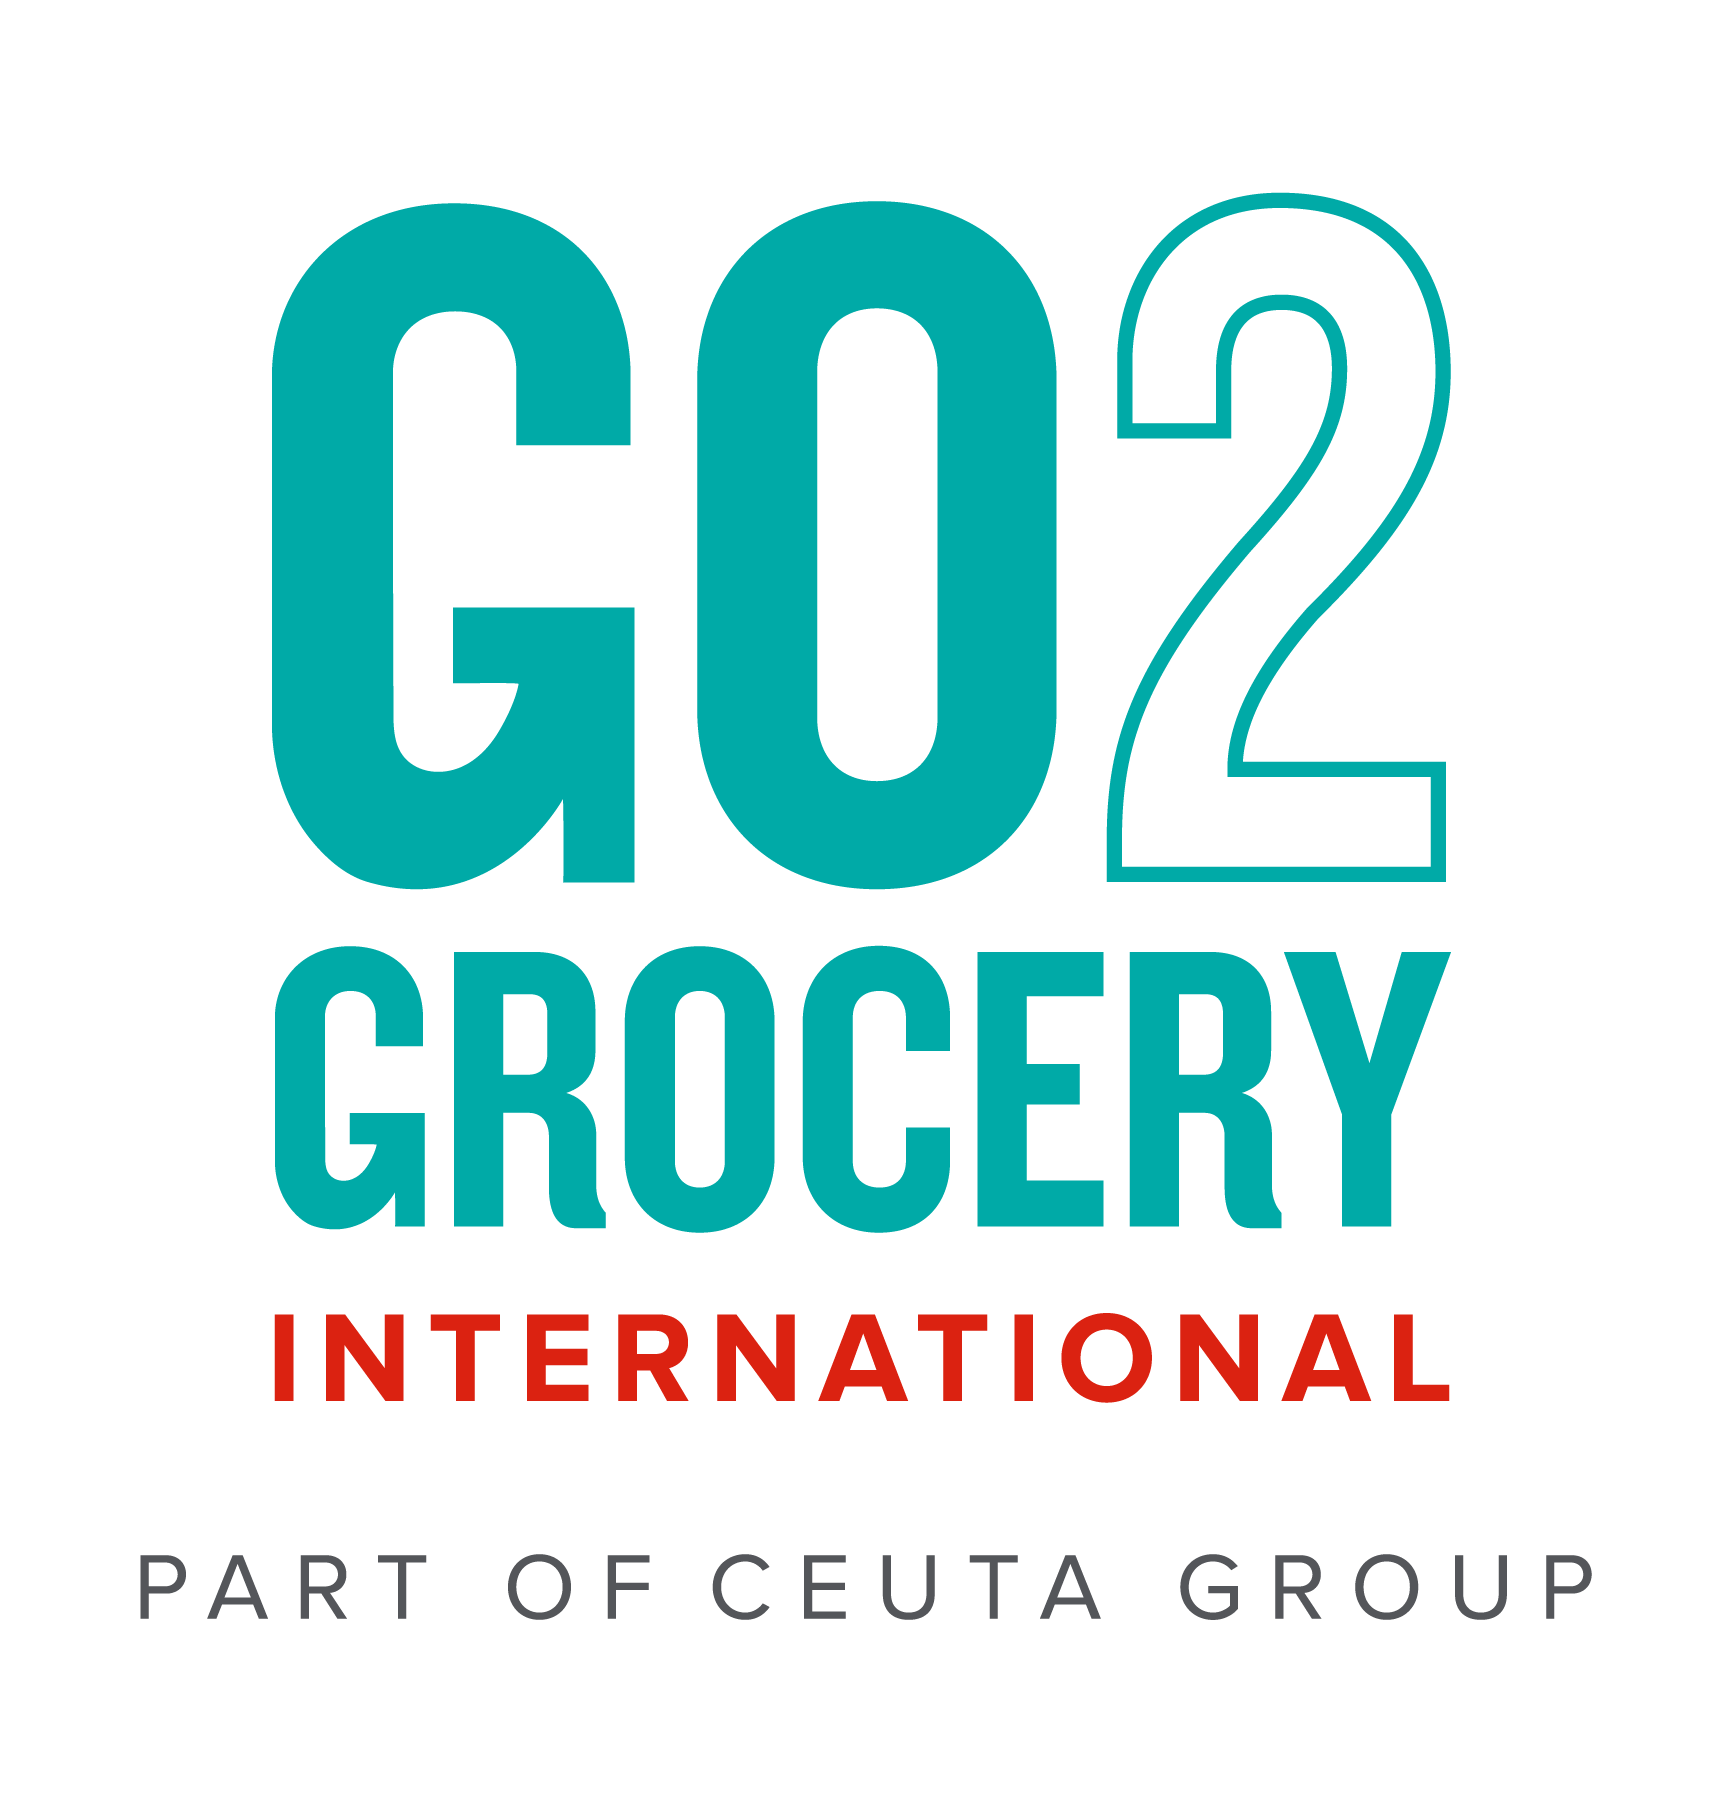 Go2Grocery International logo